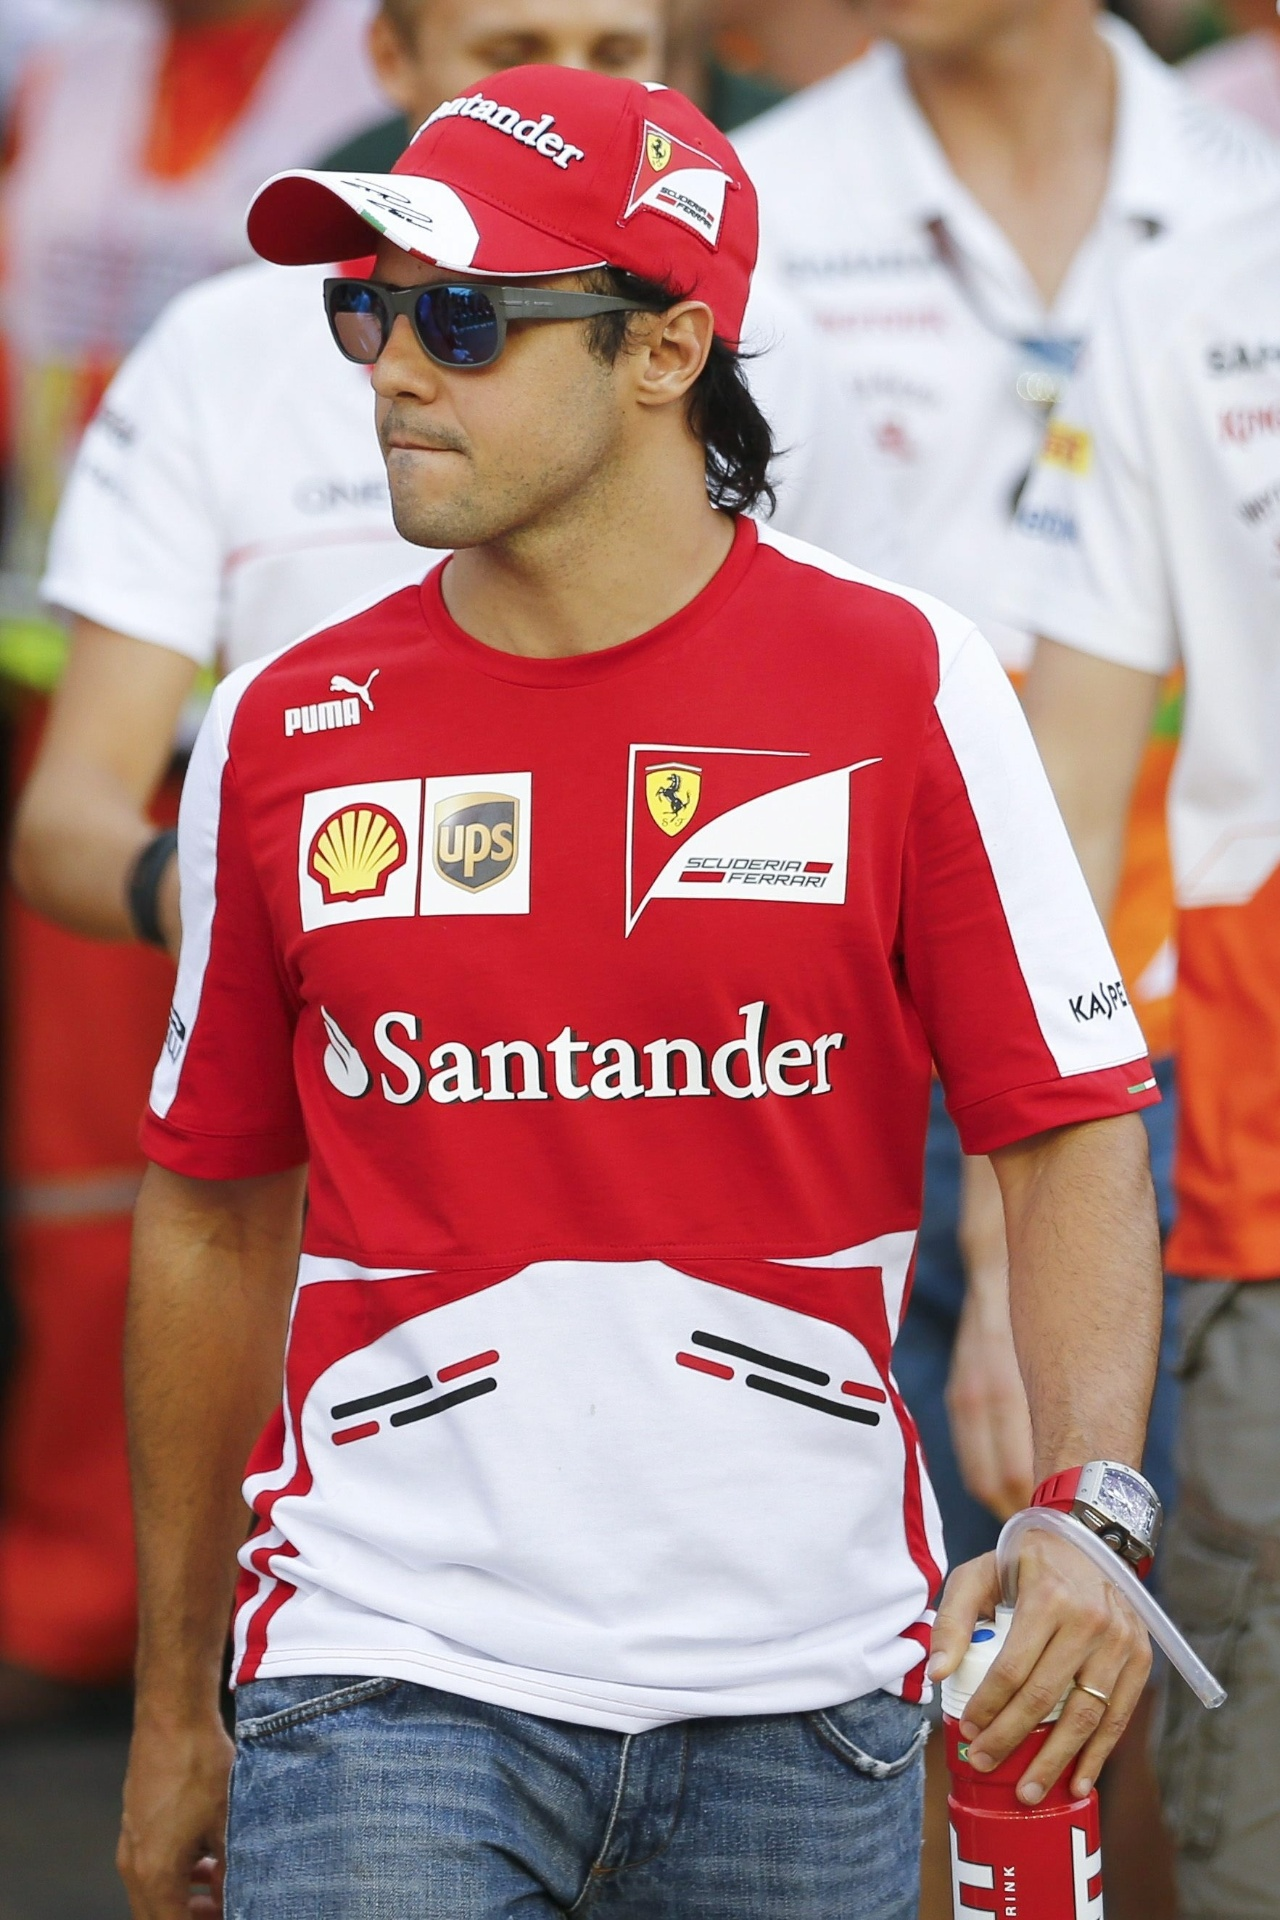 22.09.2013 - Felipe Massa chega para a disputa do GP de Cingapura